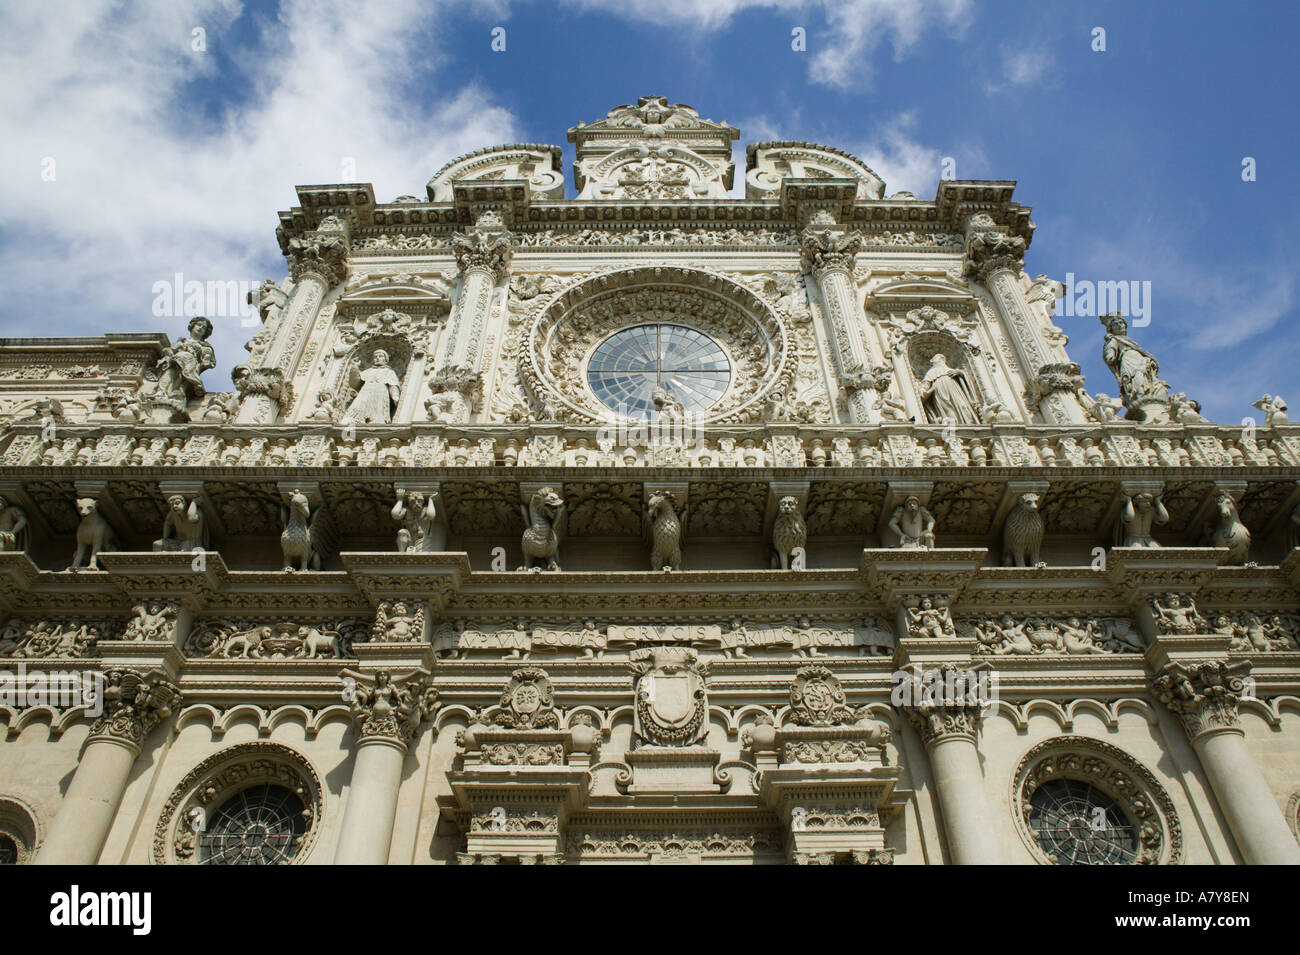 Italian baroque architecture images for Baroque architecture in italy